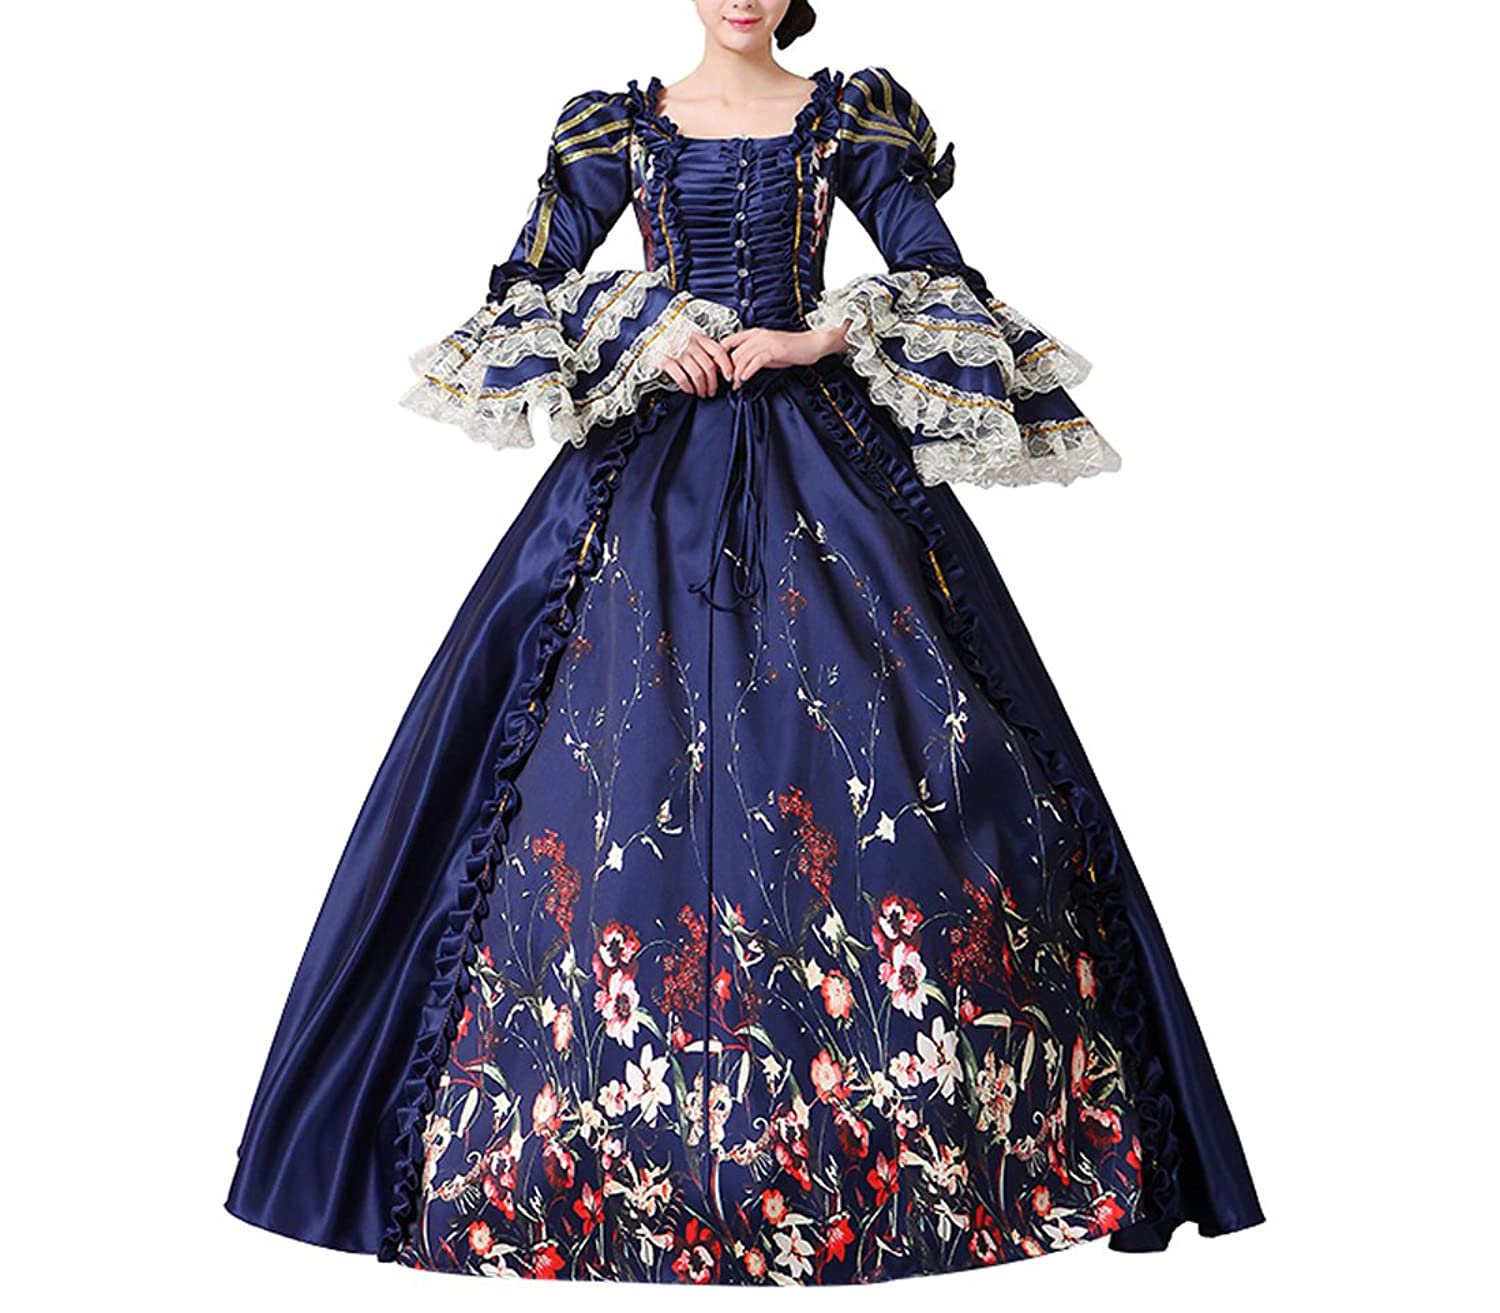 Nuoqi Damen Satin Gothic Victorian Prinzessin Kleid Halloween Fancy ...